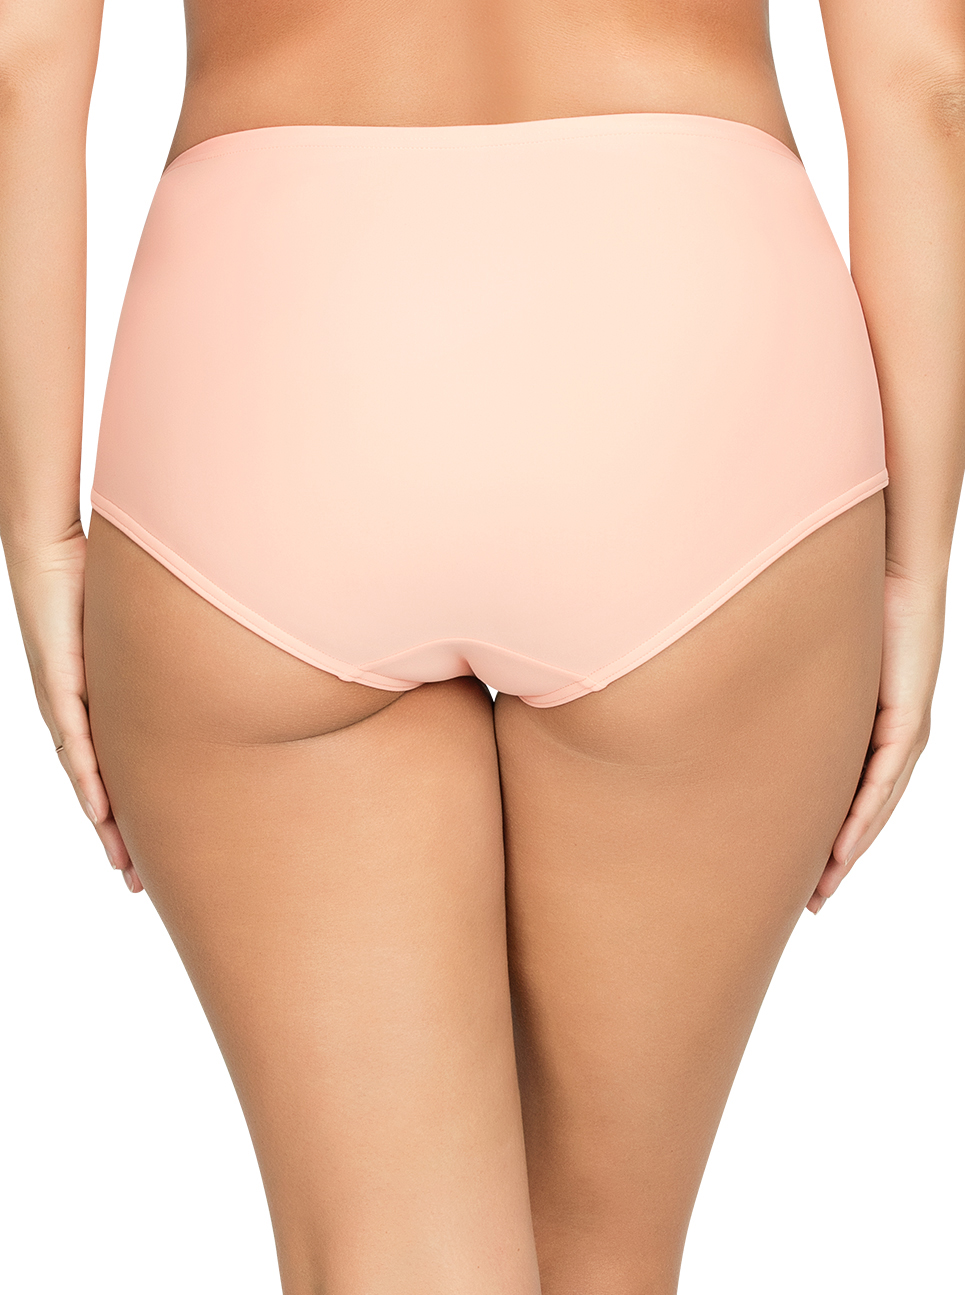 PARFAIT Keira HighWaistBikiniBottomS8075 Peach Back - Keira High-Waist Bikini Bottom Peach S8075